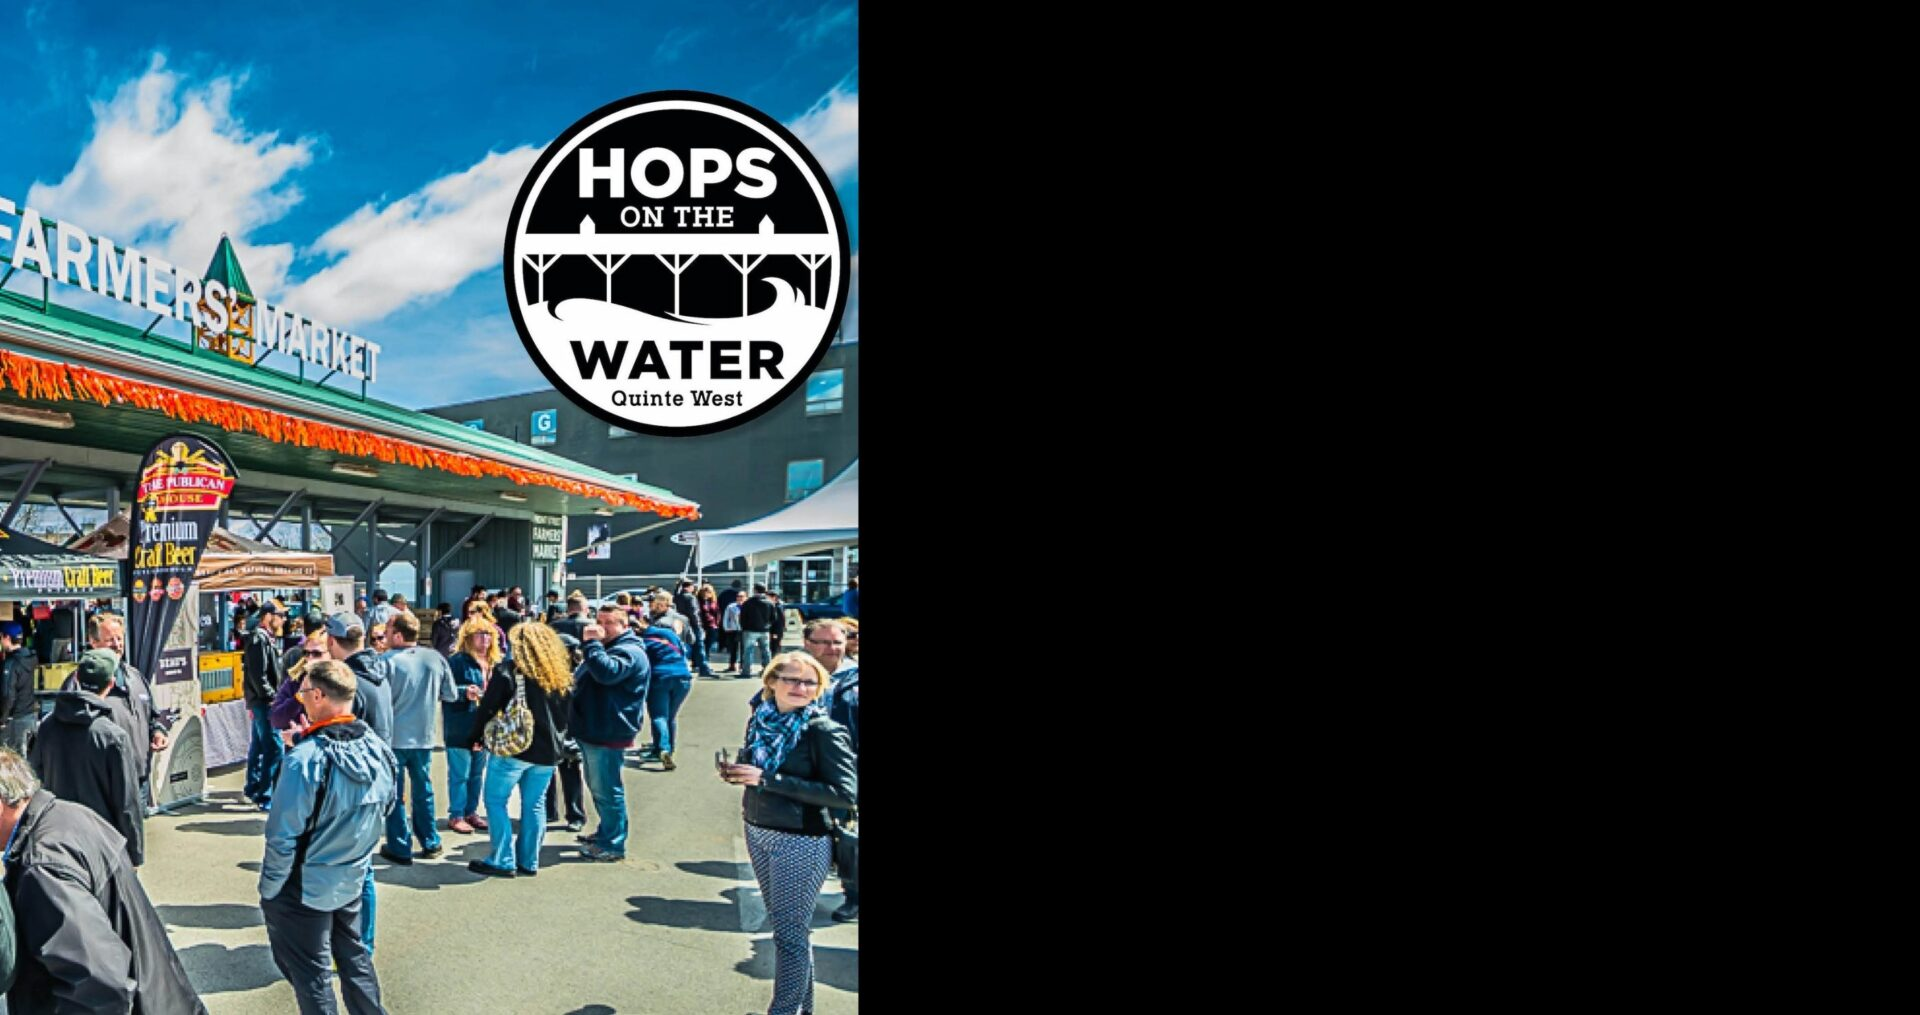 New Date! Hops On The Water